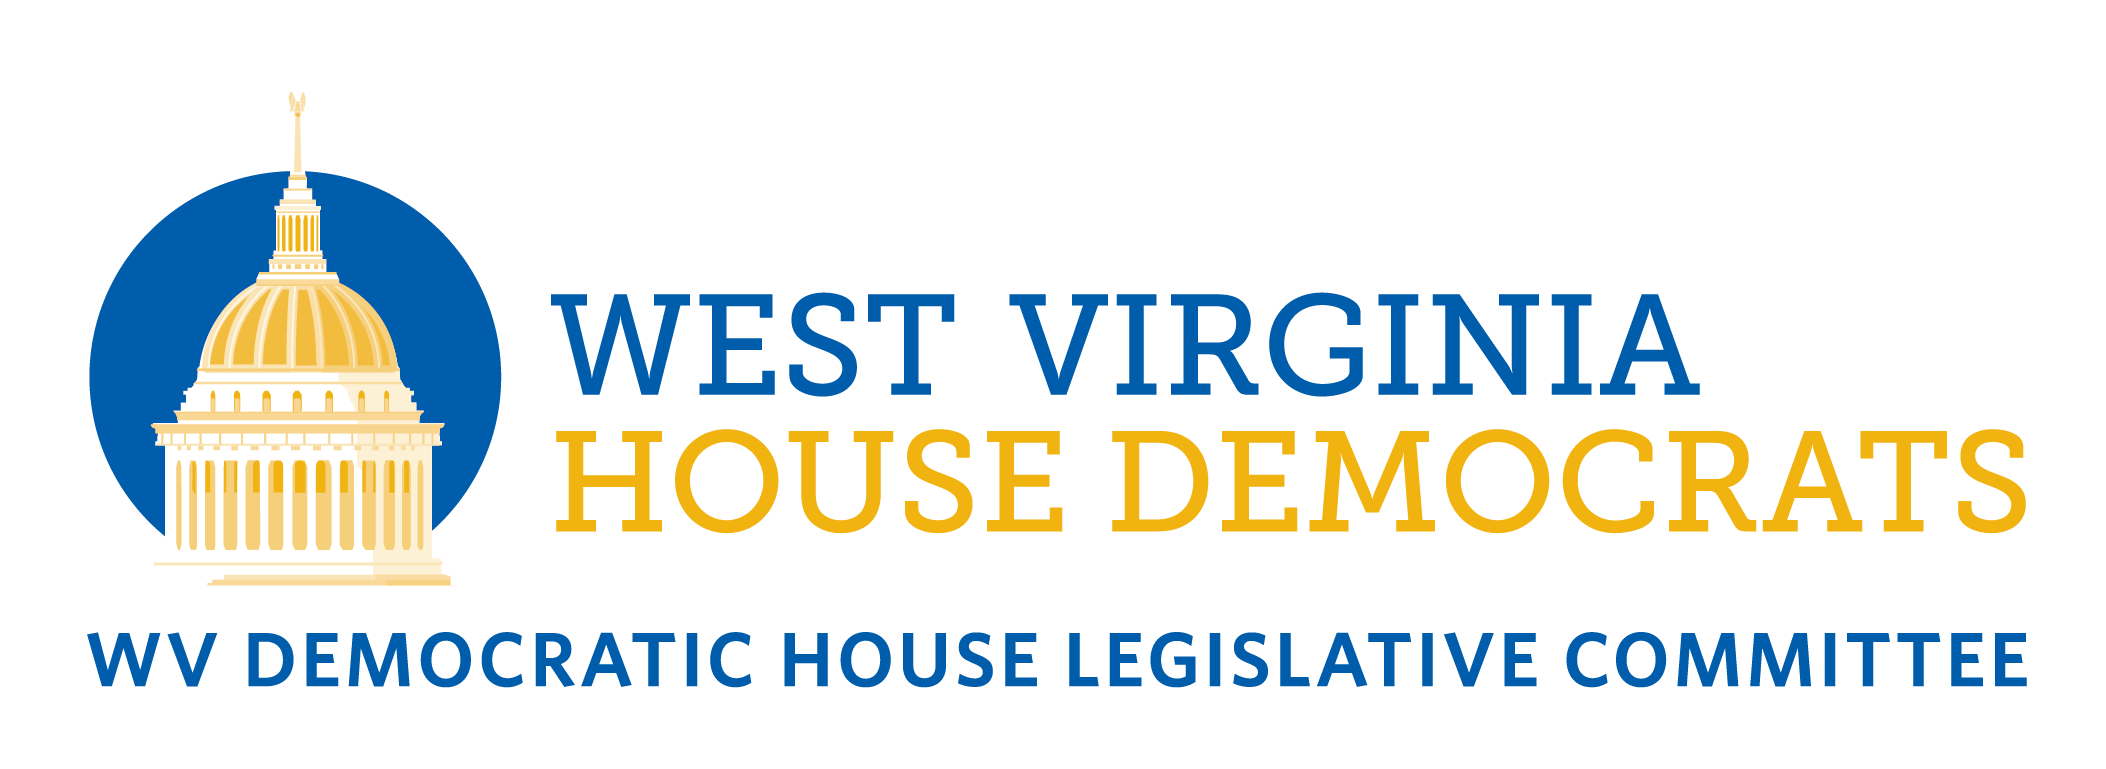 West Virginia House Democrats